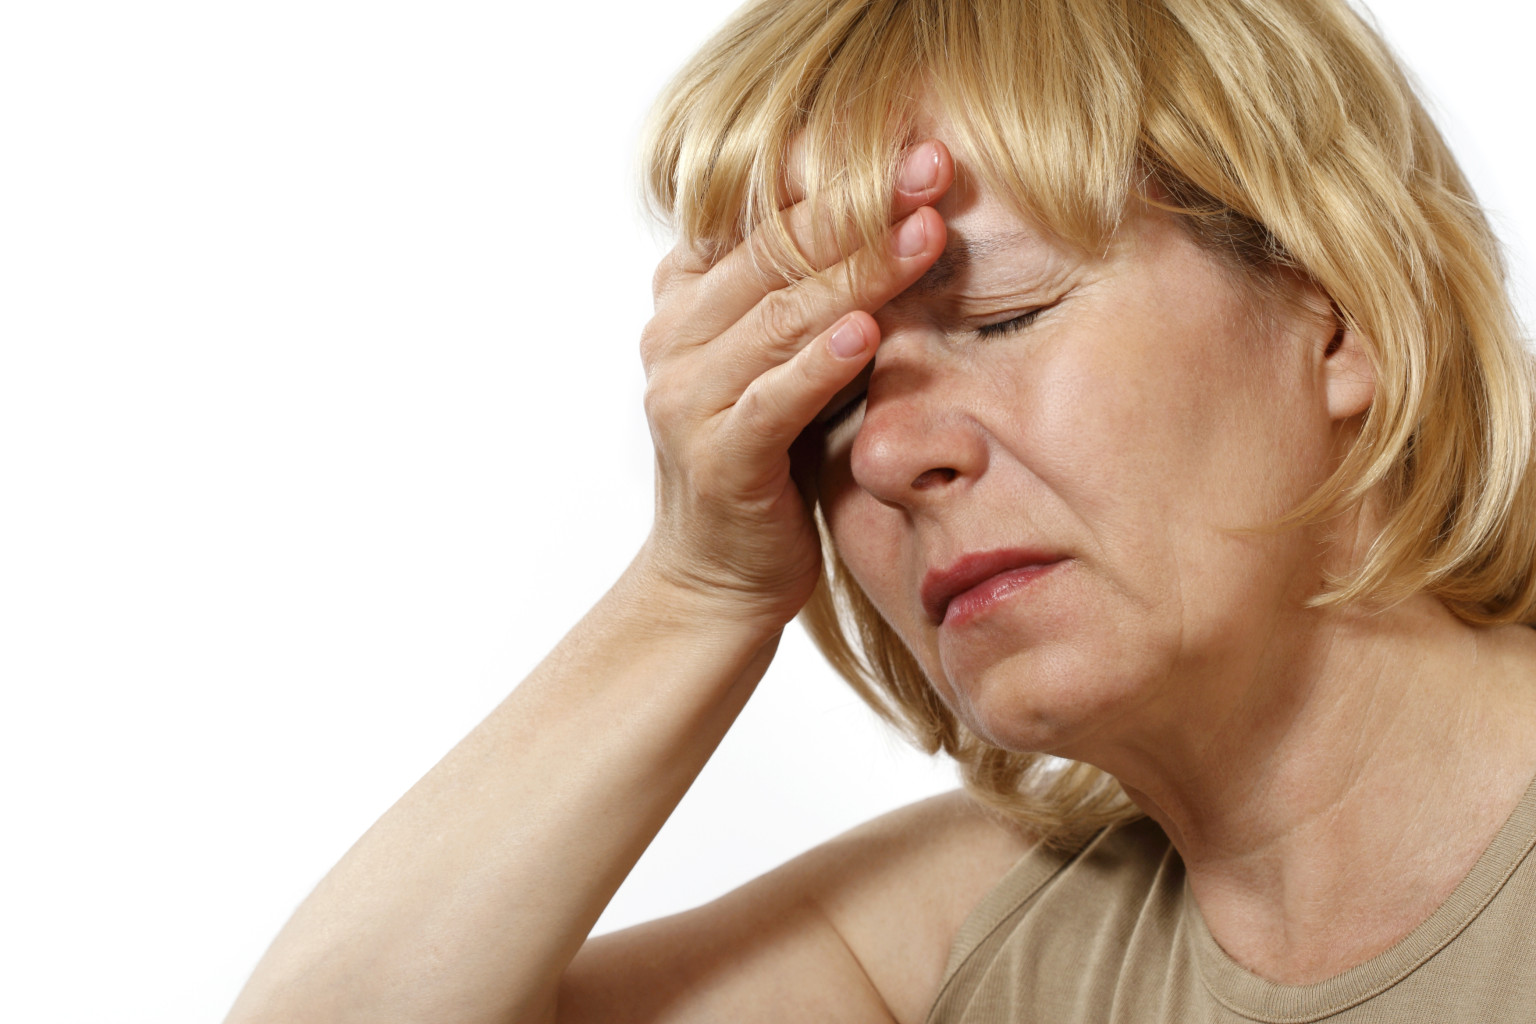 Watch Menopause Symptoms: Fatigue and Menopause video